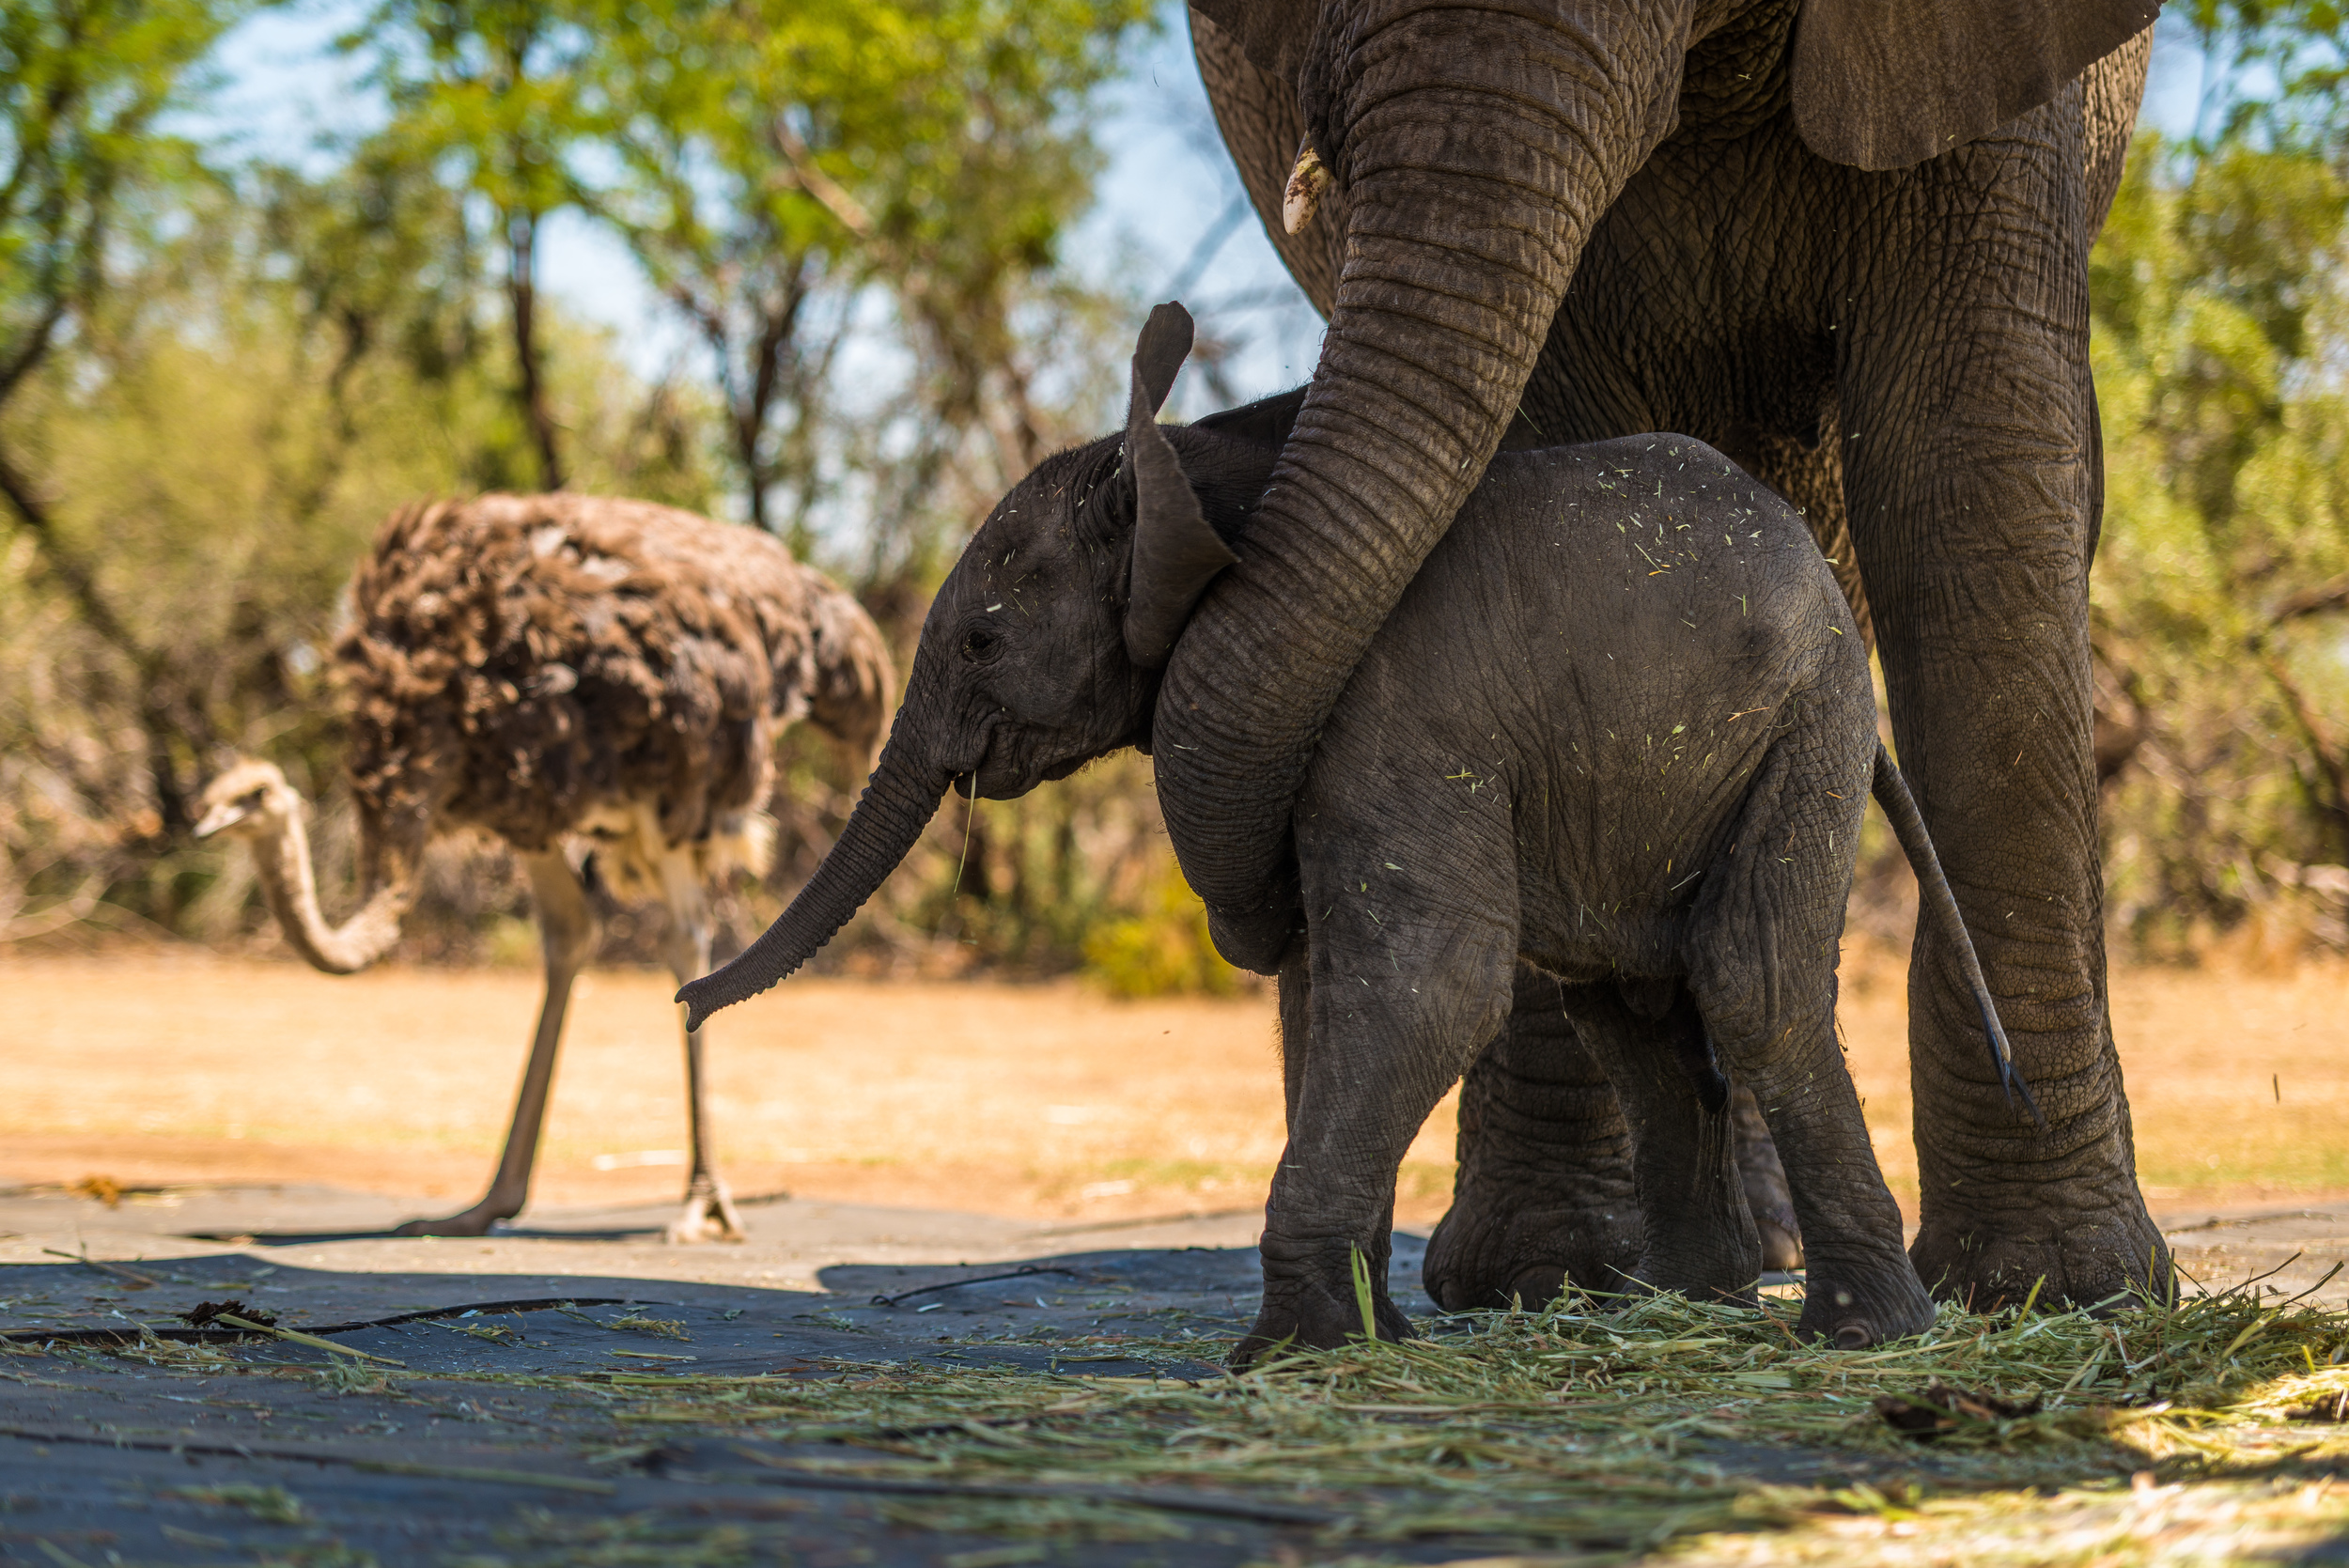 Little Zambezi was well protected by his mother Shan with extra protection from his aunt, Nuanedi here.